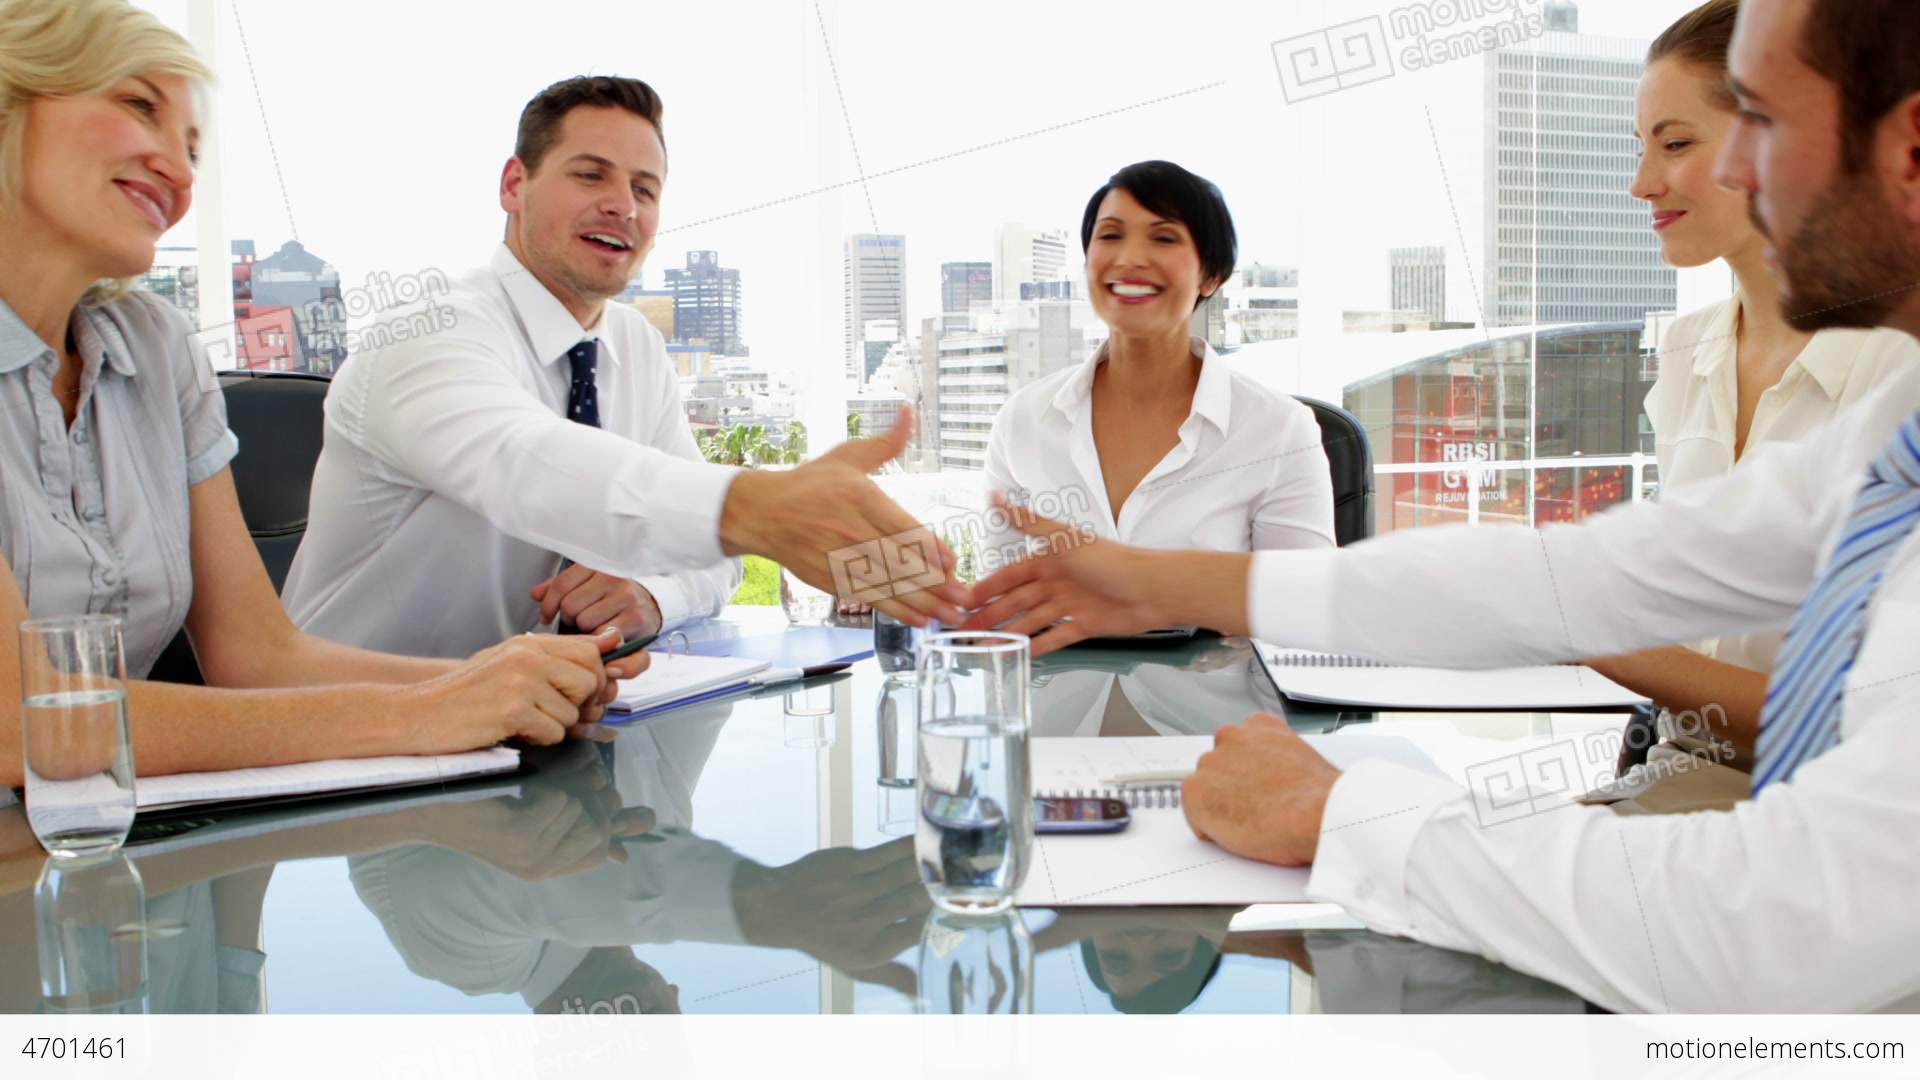 me4701461-happy-business-people-shaking-hands-during-meeting-south-africa-hd-a0154.jpg